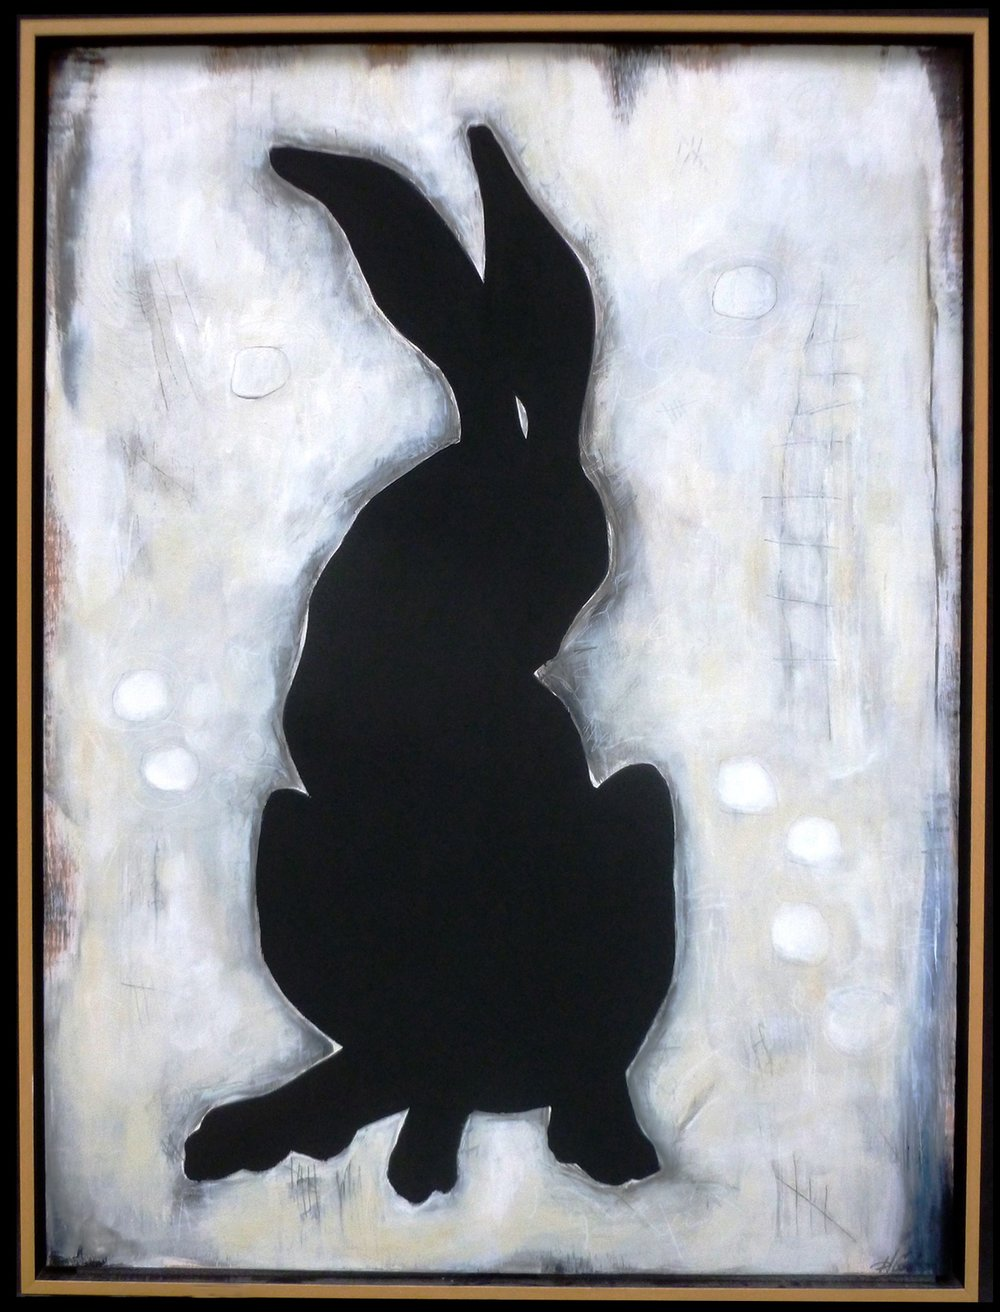 CONEJO DE LA NOCHE II (RABBIT OF THE NIGHT II)